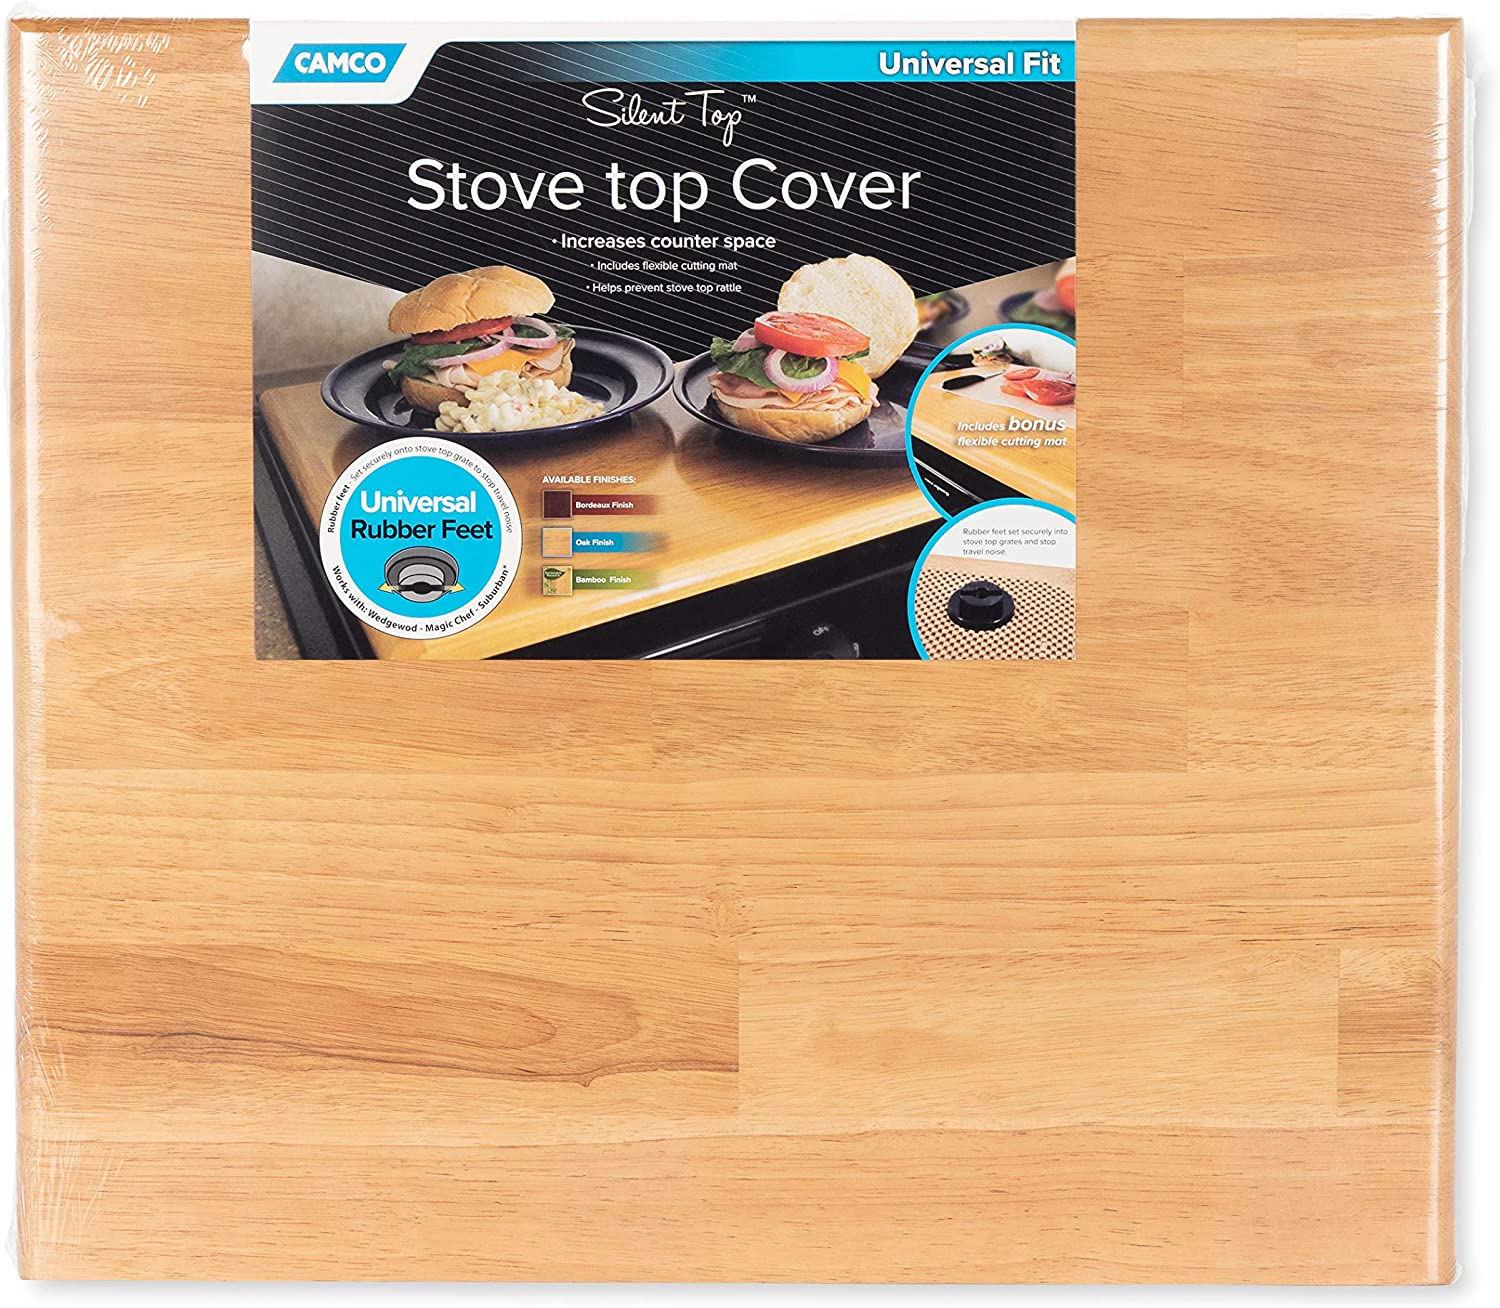 Sale price Camco Free Shipping New Oak 43521 Universal Stove Top Cover-19 x 1 by 3 2